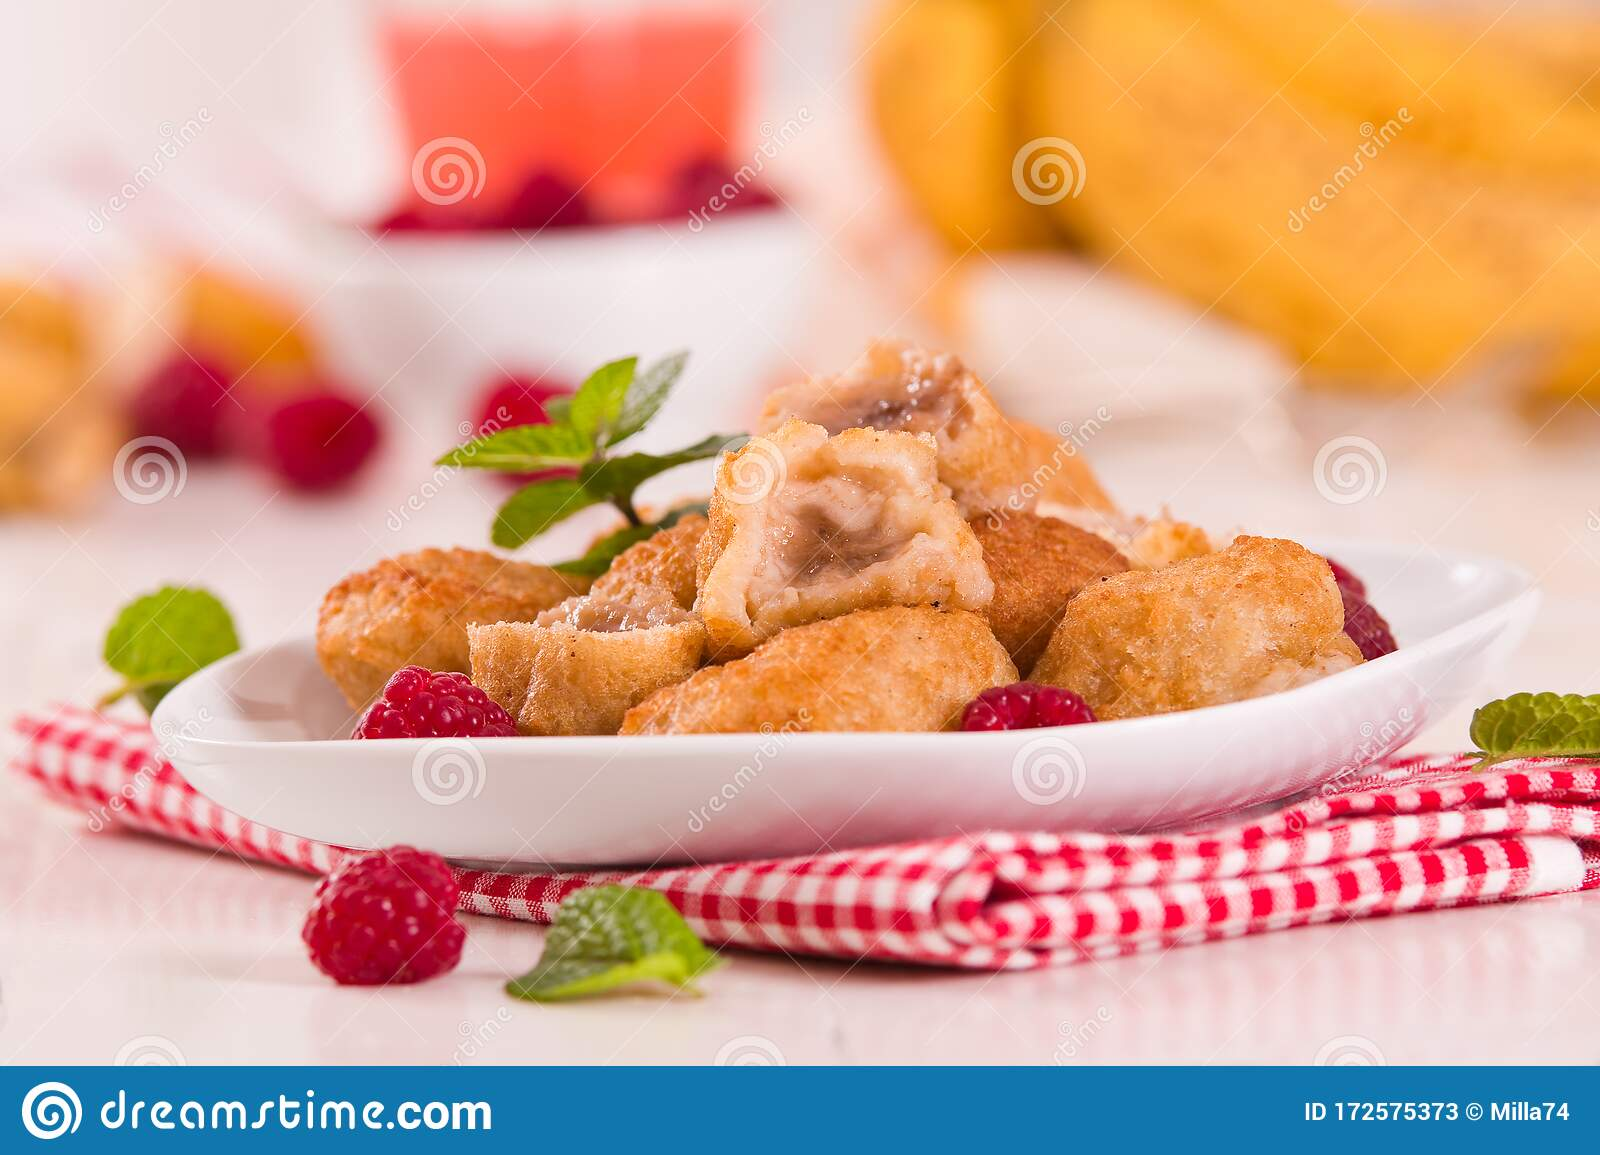 Banana Fritters Stock Image Image Of Baked Gourmet 172575373